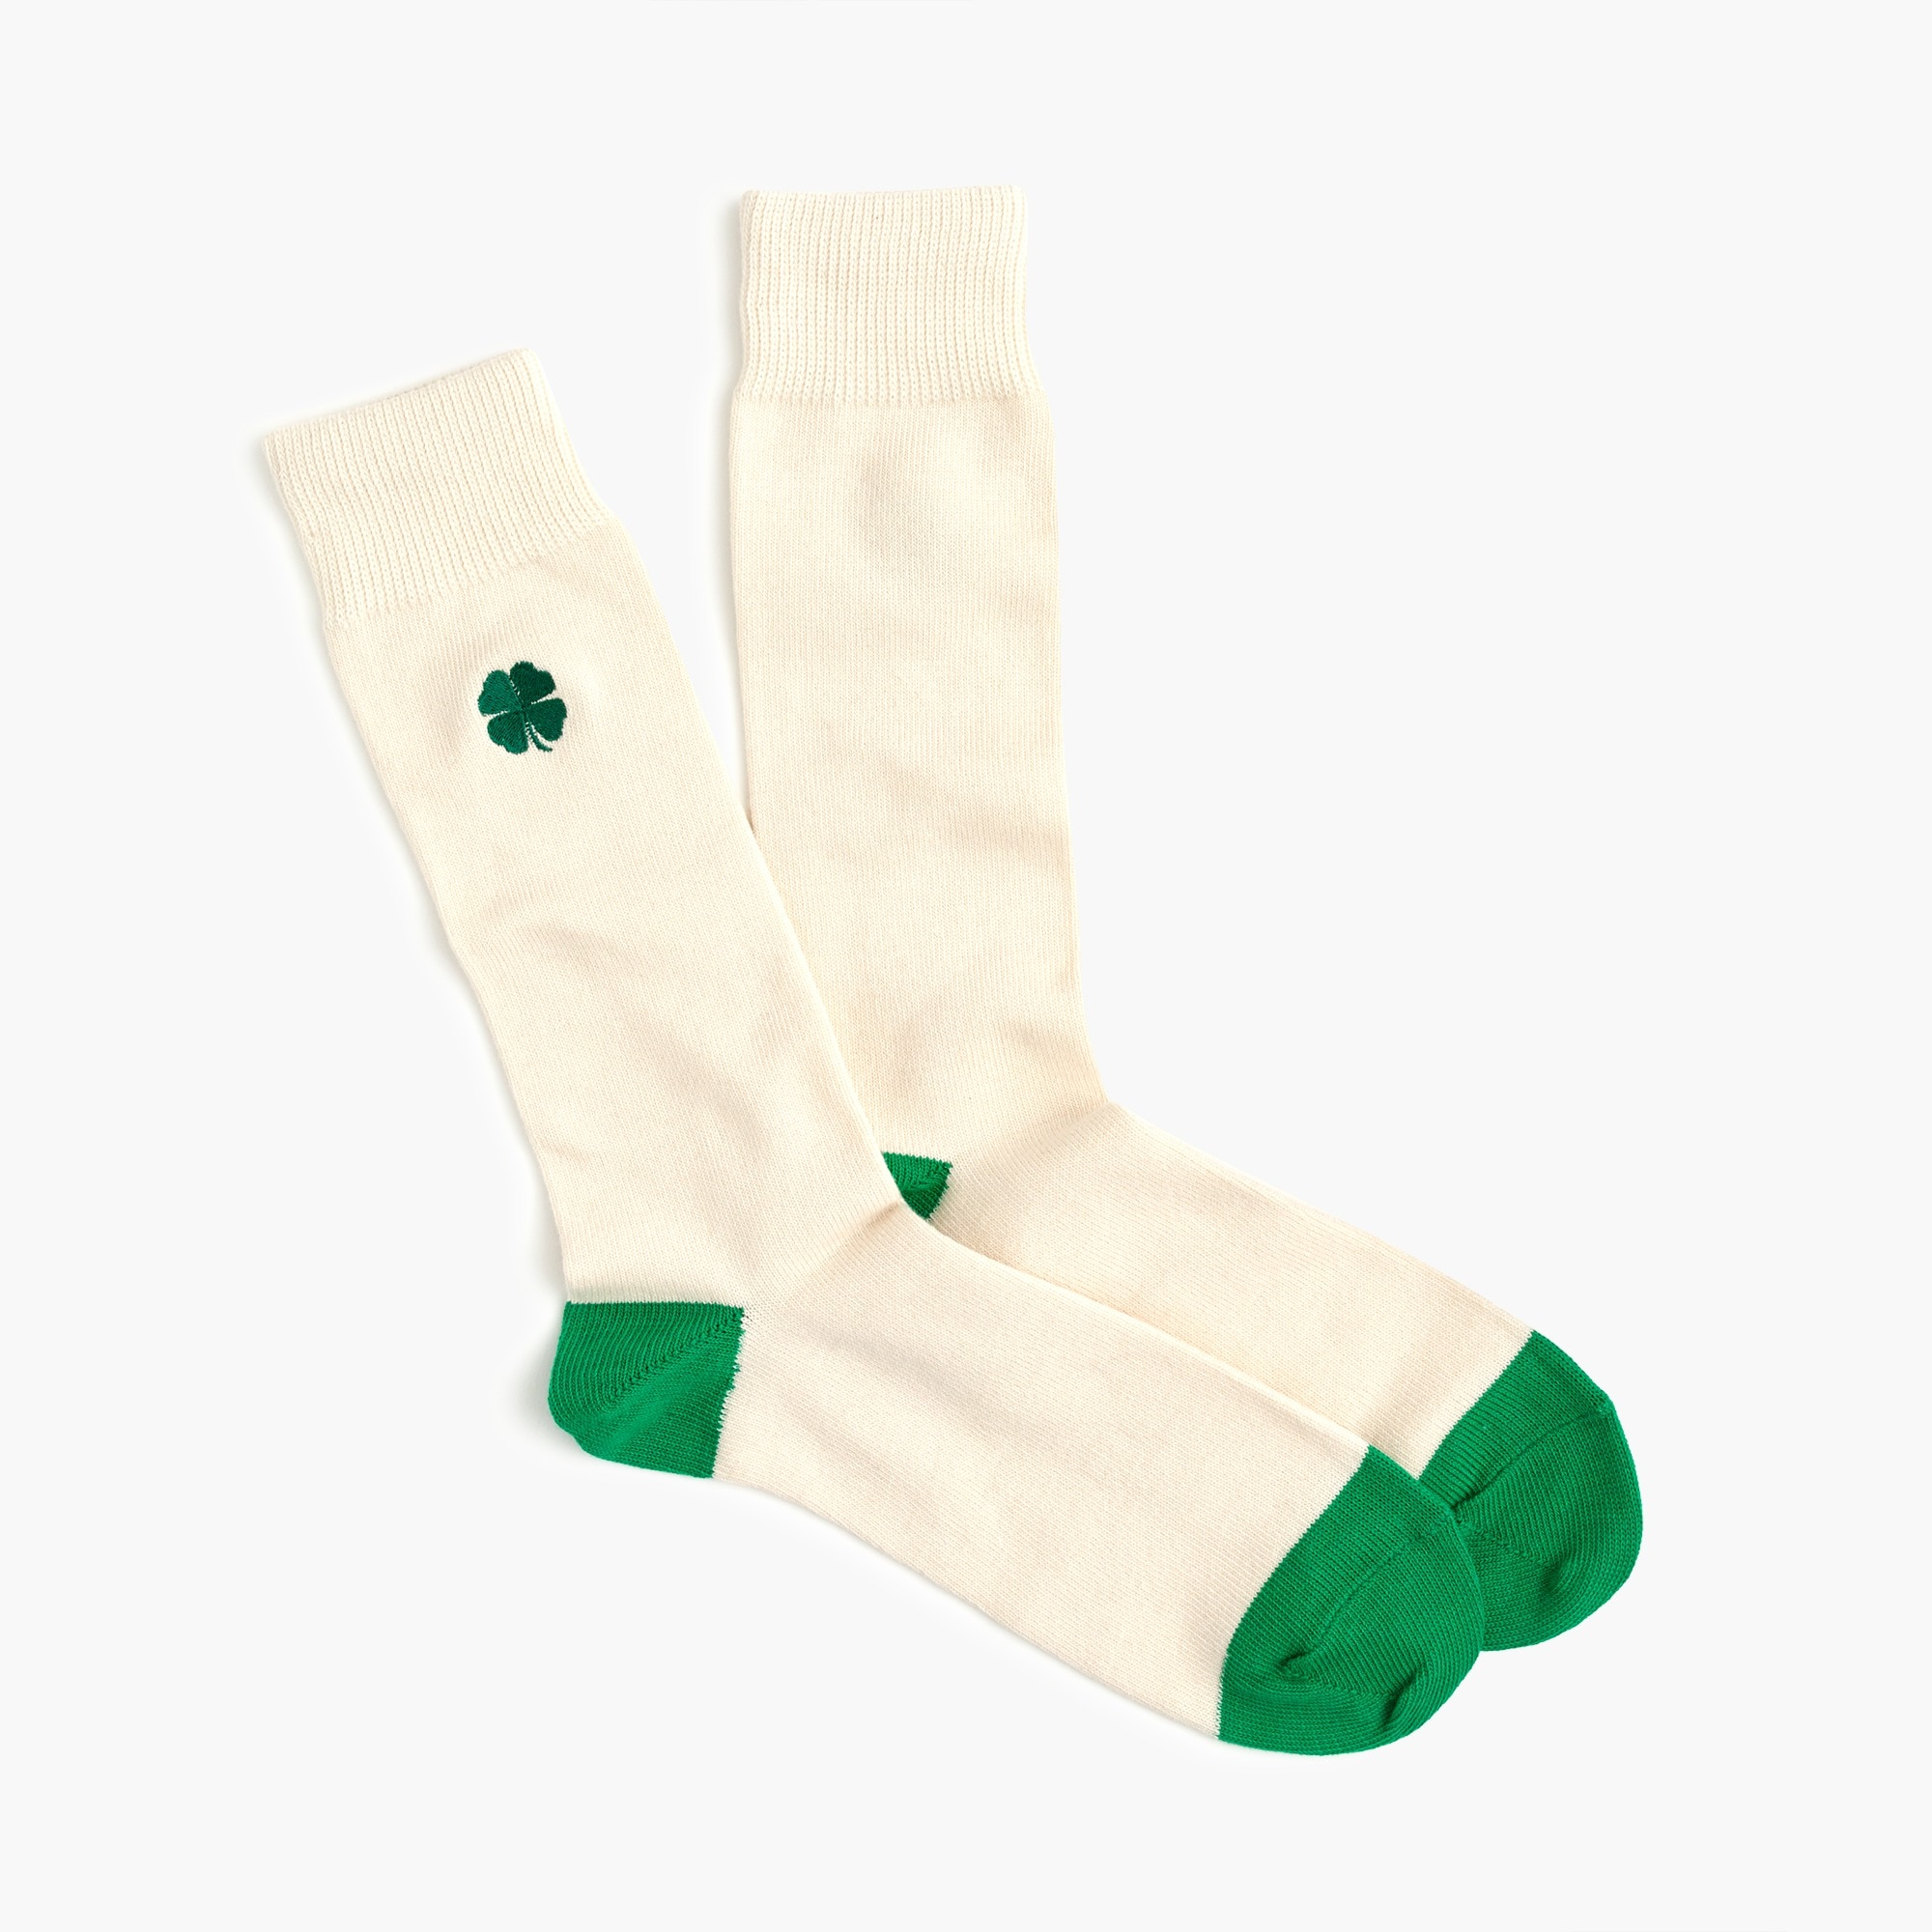 Embroidered shamrock socks men socks c